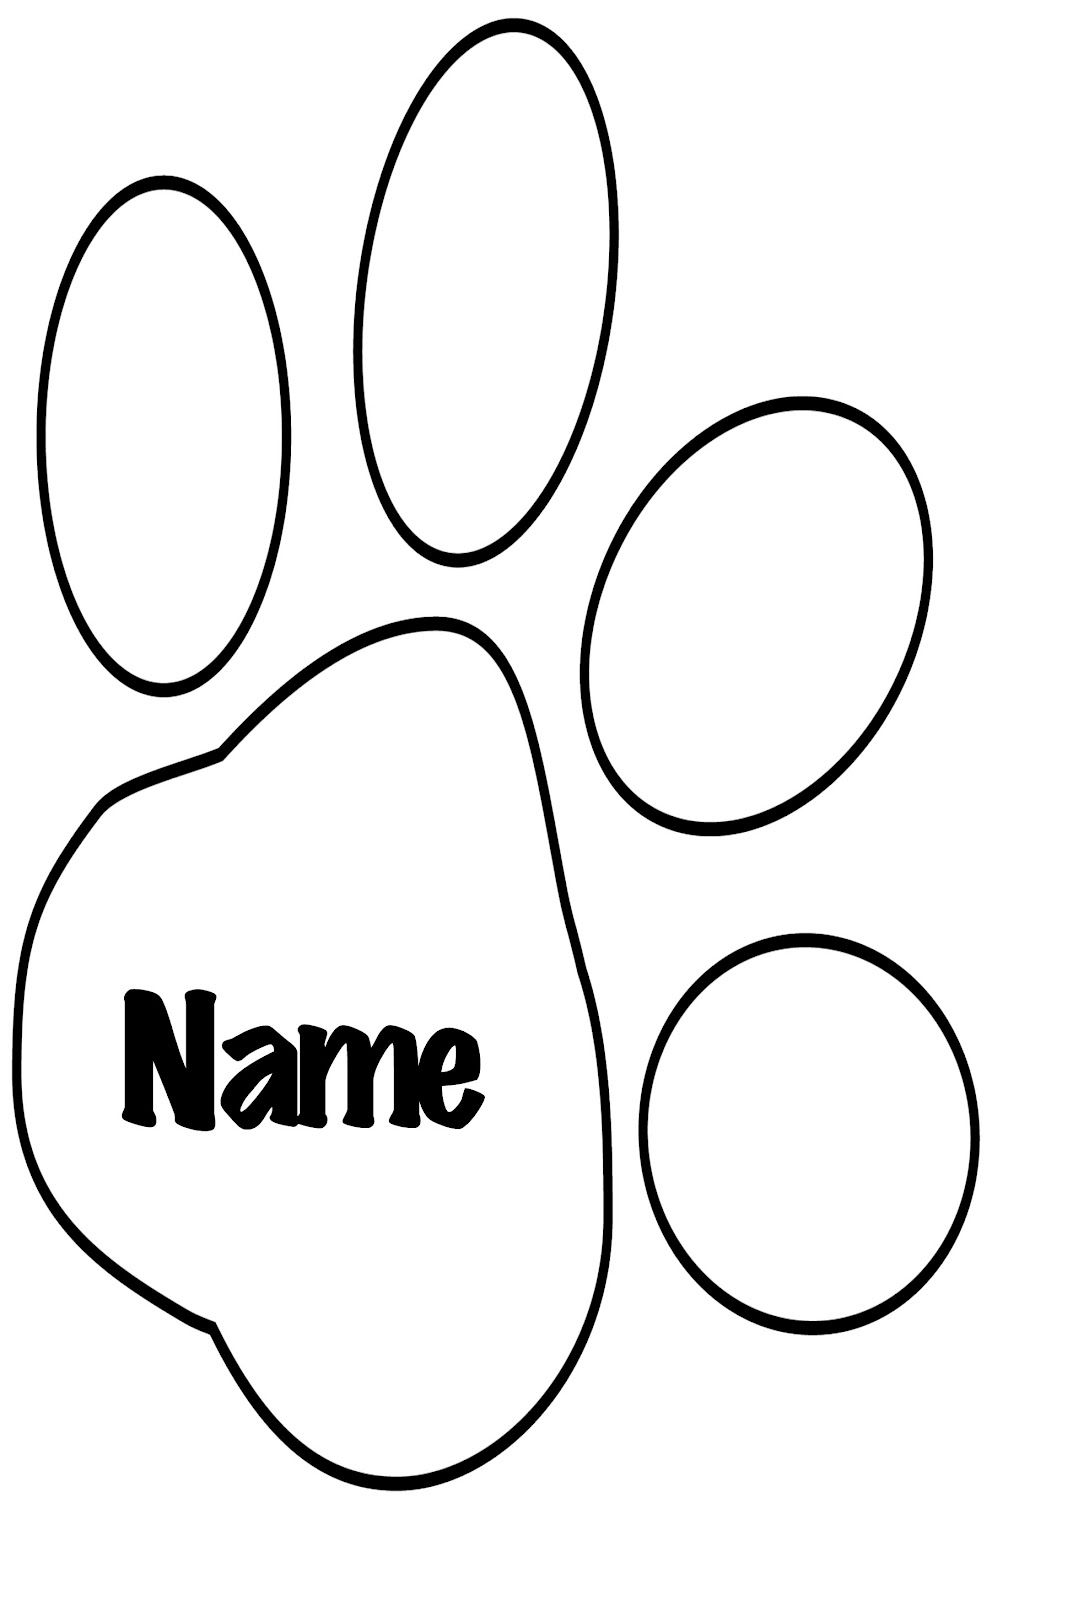 Little Speech Corner Coloring Pages To Print Bear Paw Print Coloring Pages